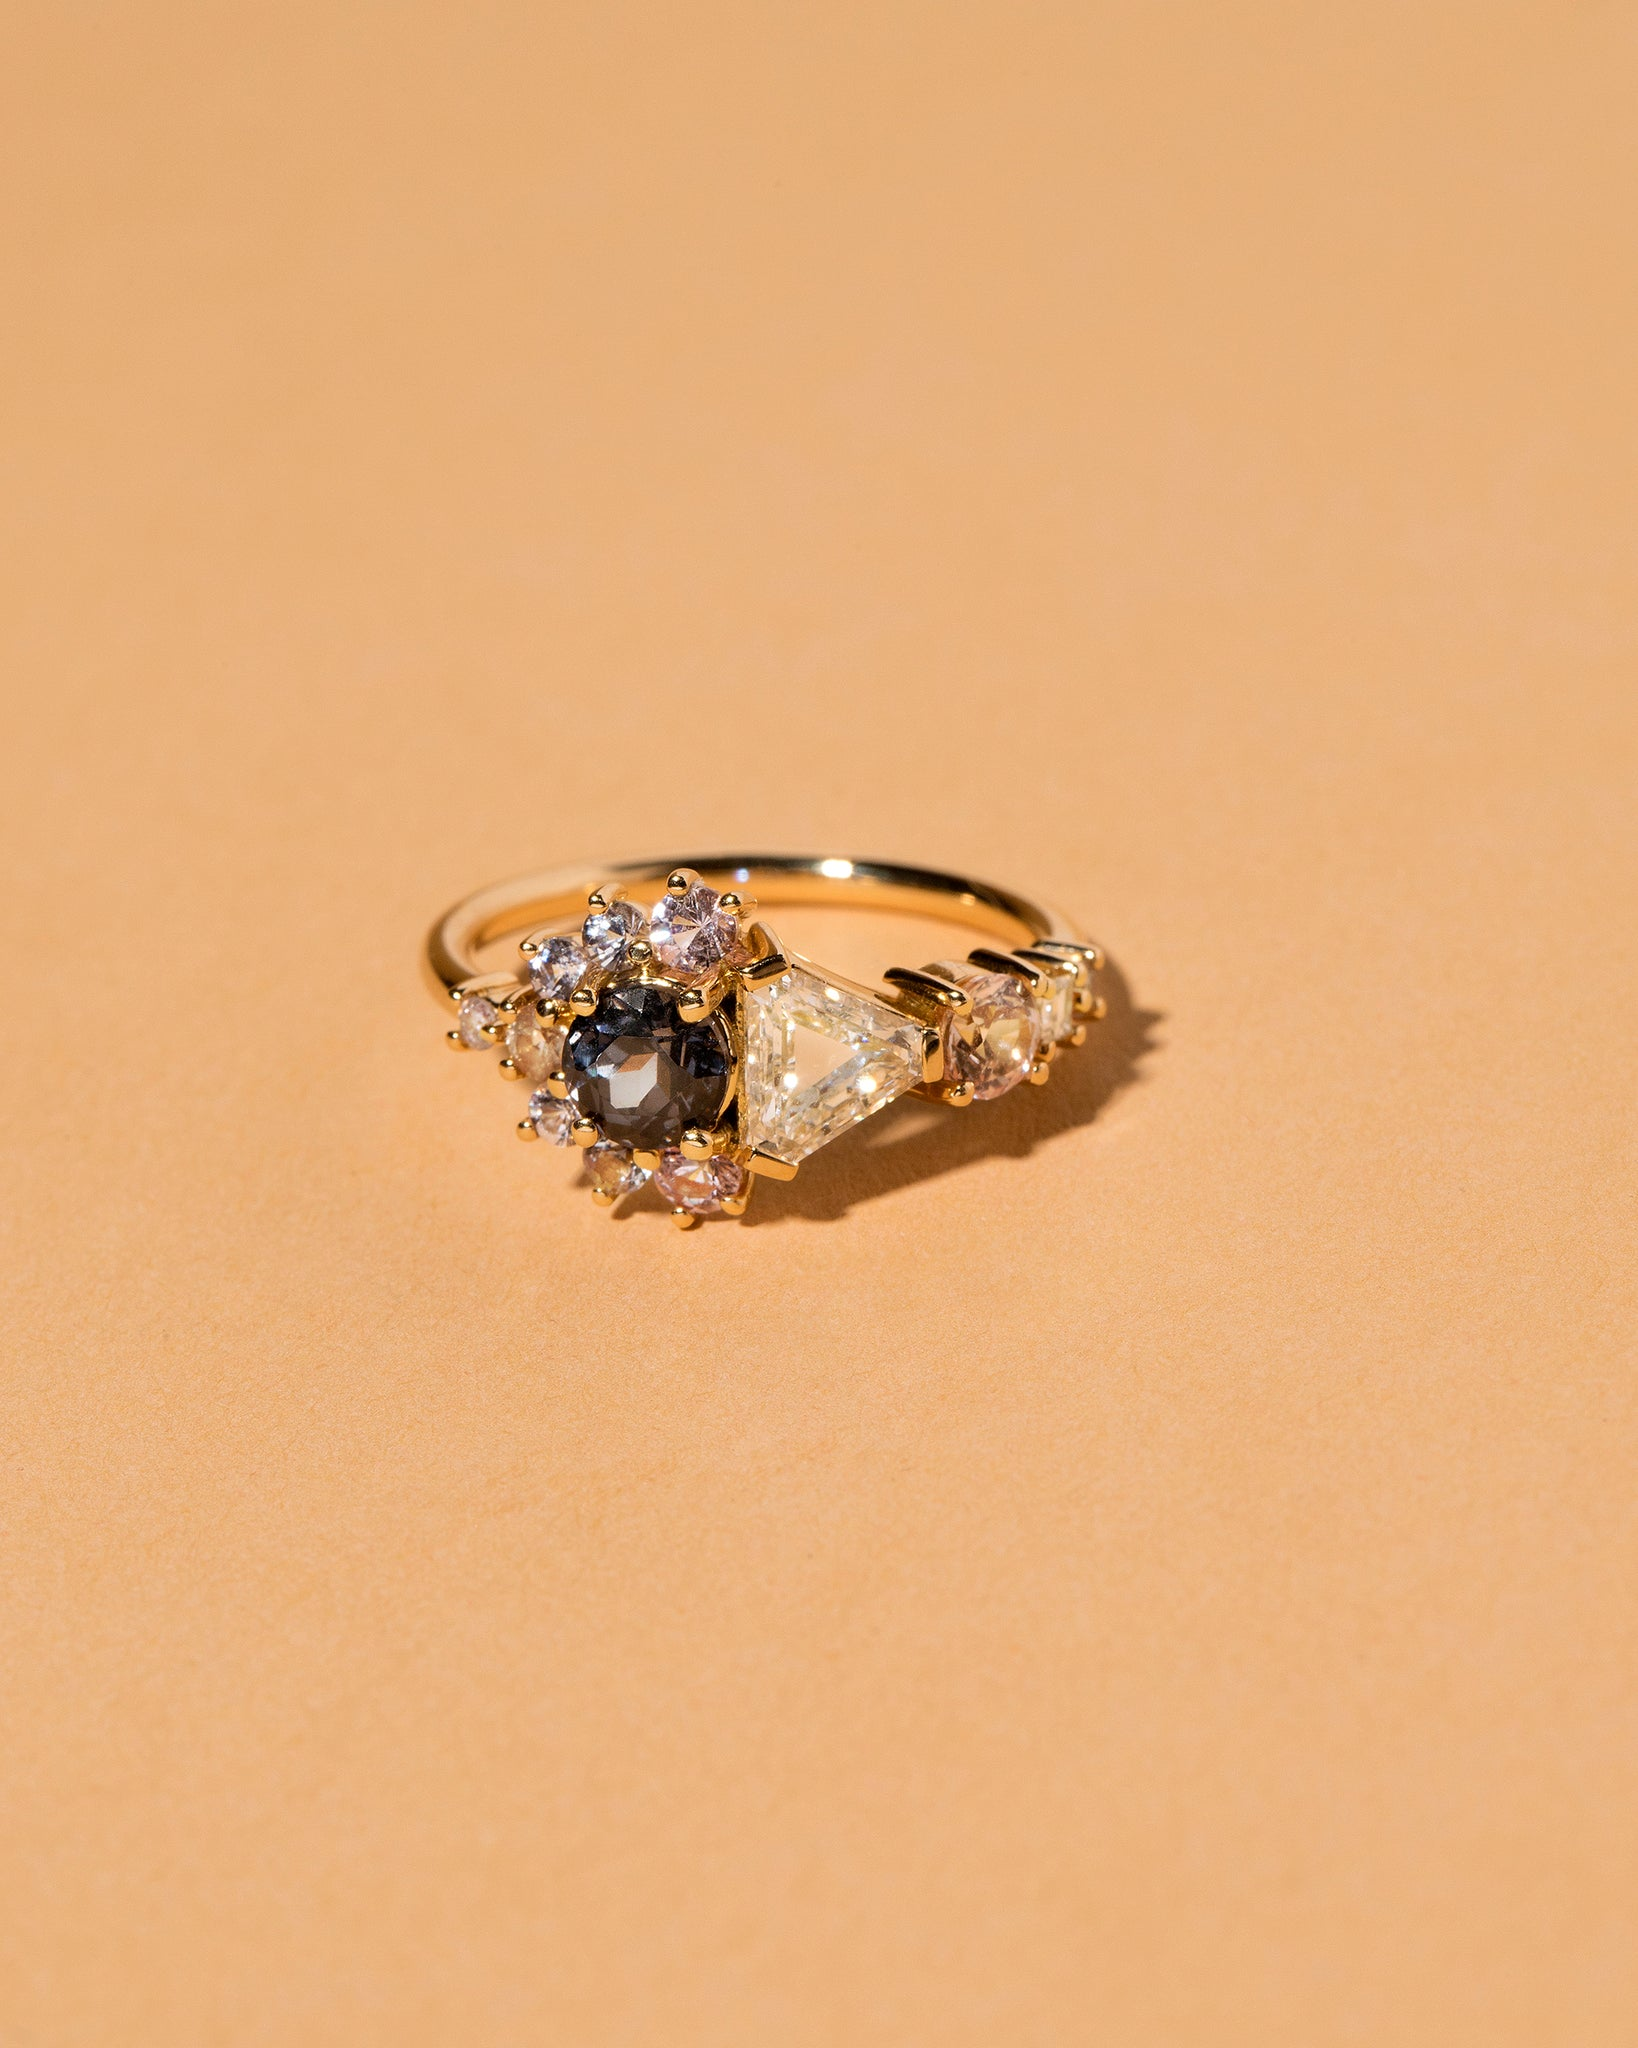 Diamond, Spinel & Sapphire Cluster Ring on light color background